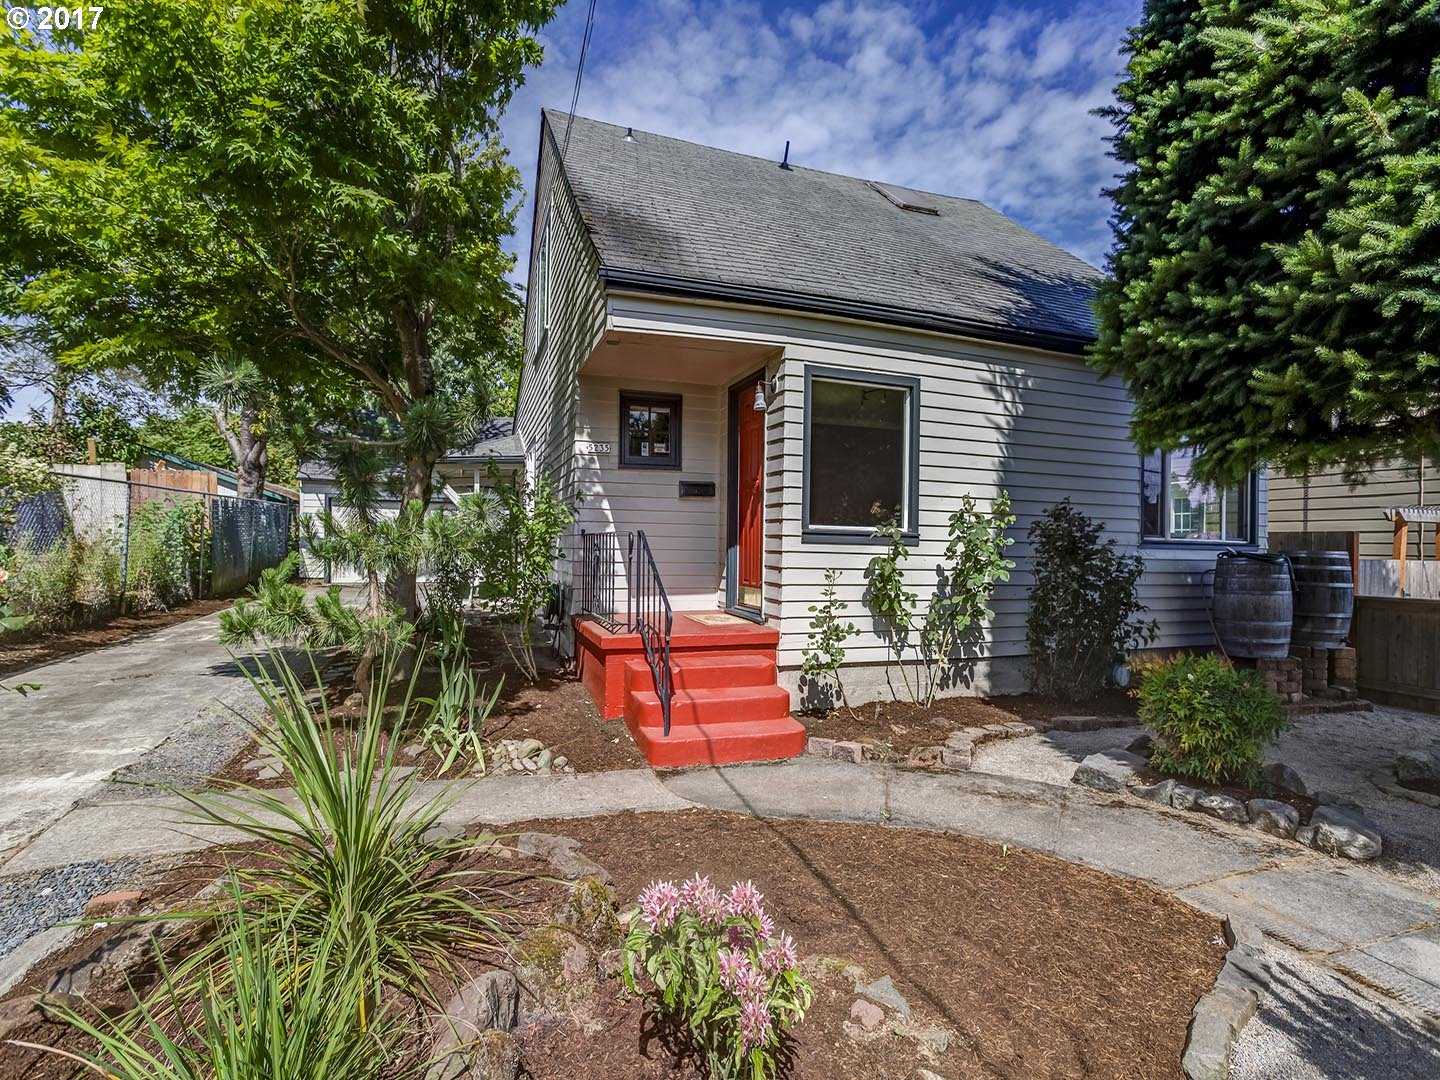 5235 NE 16TH AVE, Portland, OR 97211